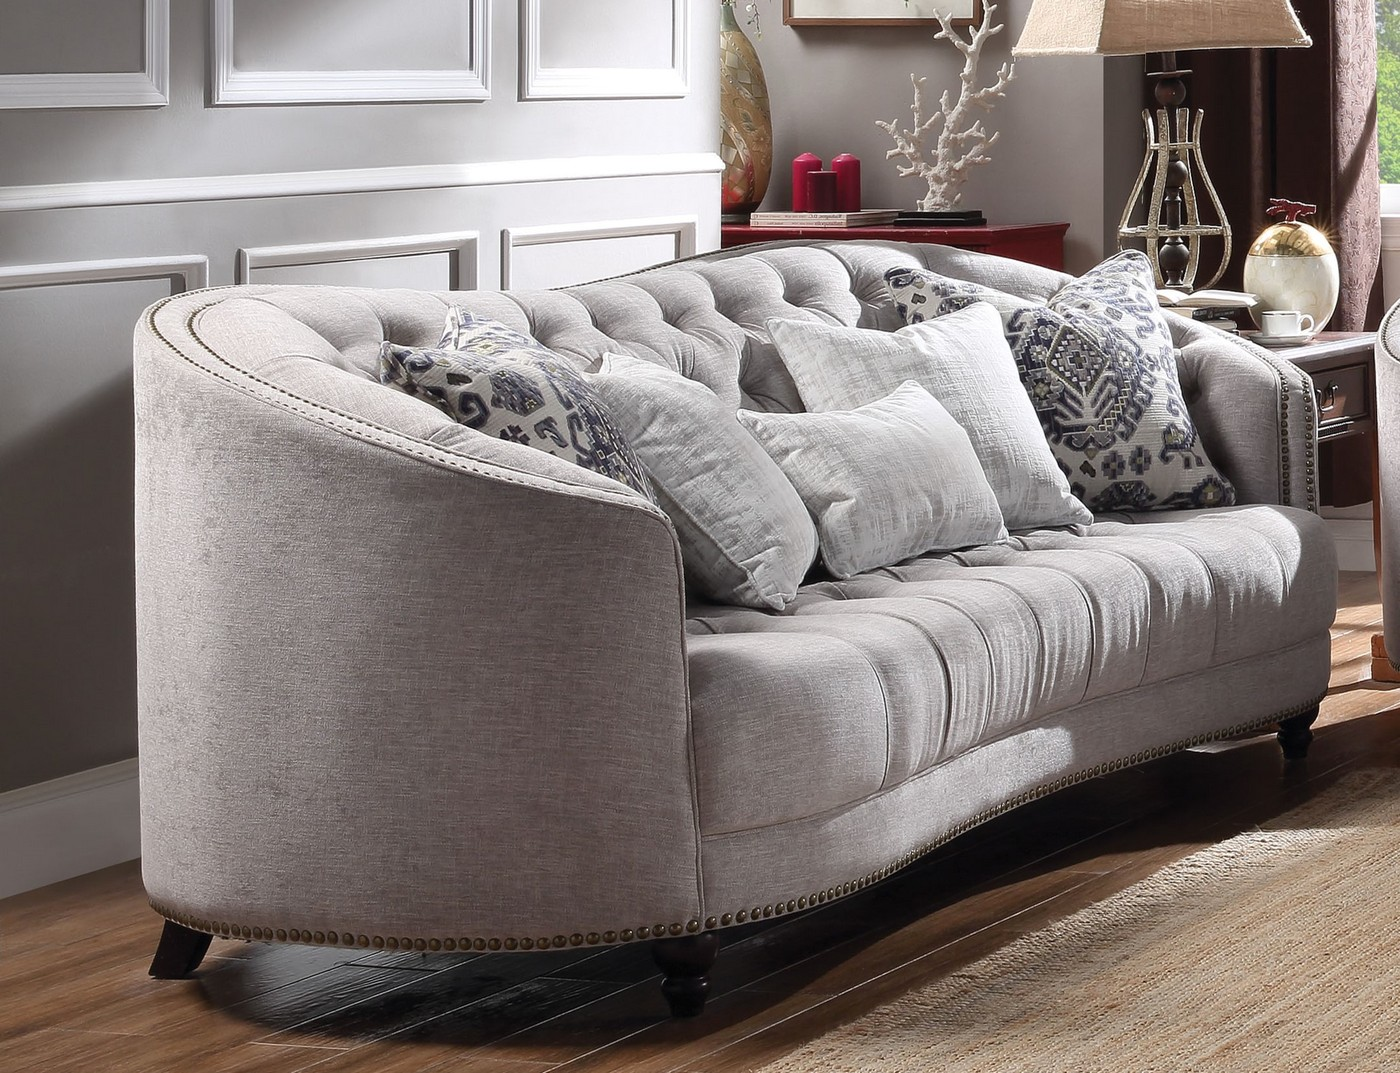 Julia Curved Light Gray Curved Tufted Sofa Set w/ Plush ...